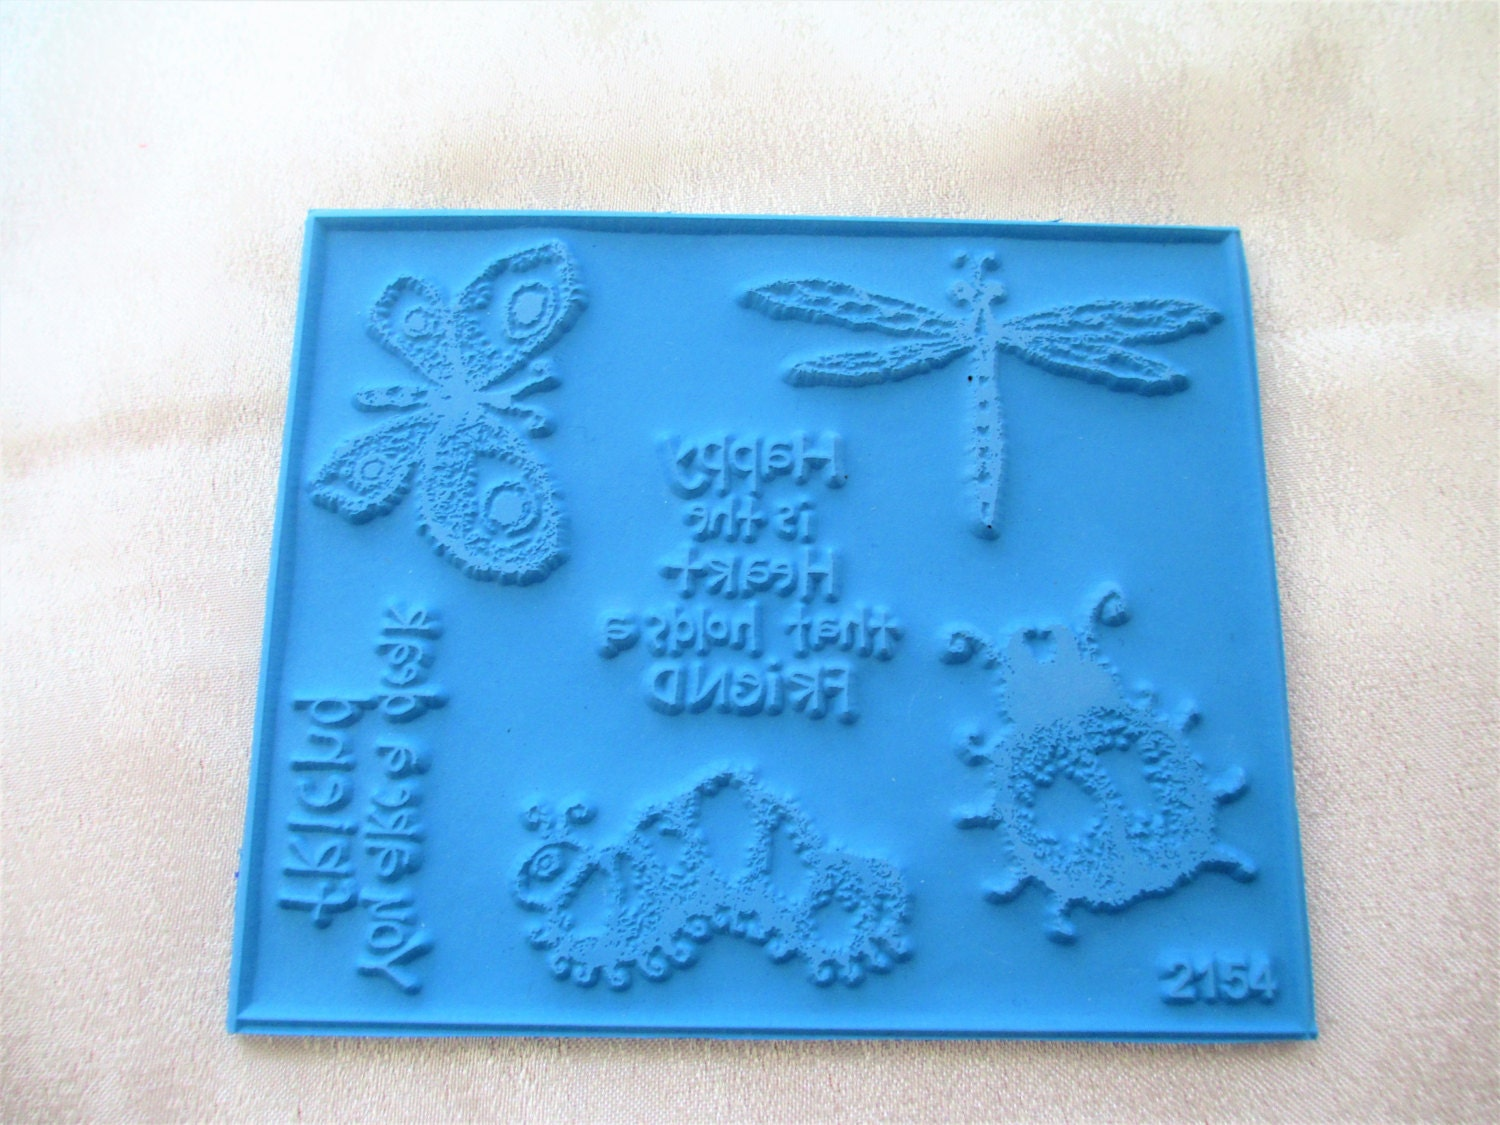 Rubber stamp craft supplies - 6 Unmounted Rubber Stamp Dragonfly Stamp Butterfly Stamp Rubber Stamp Sheet Paper Craft Stamp Craft Supply Stamp Rubber Stamps